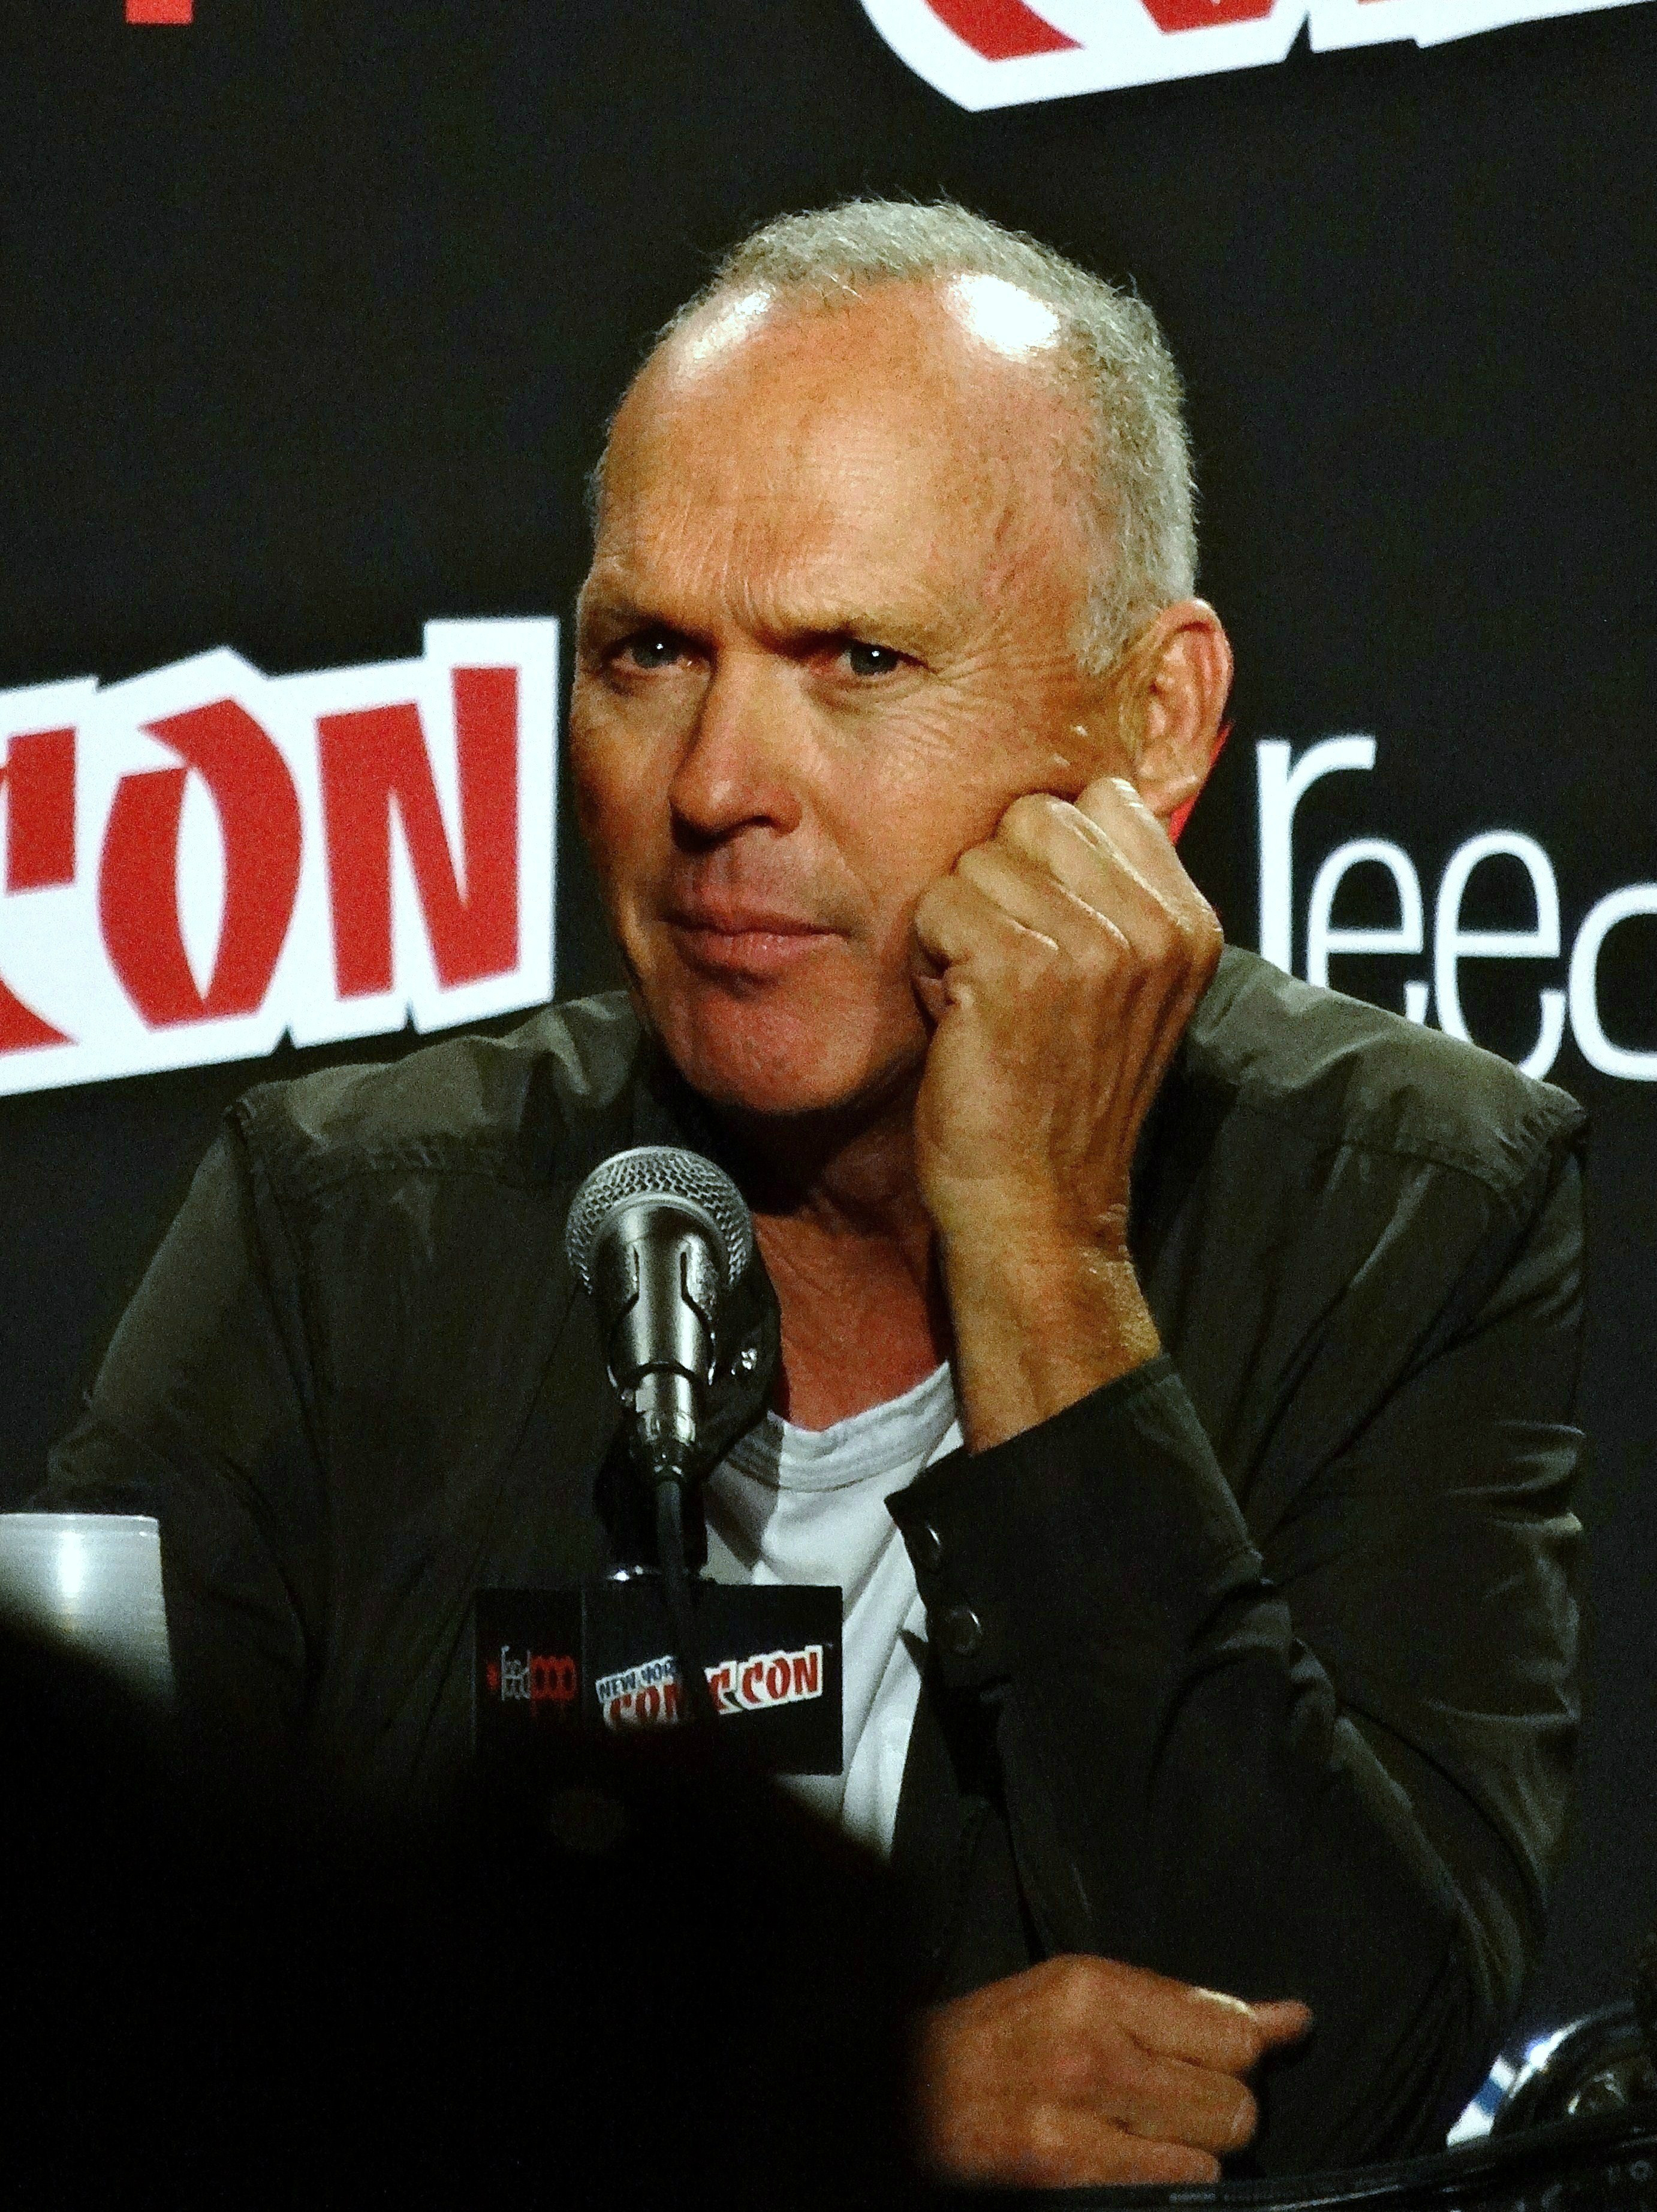 The 69-year old son of father George A. Douglas and mother Leona Elizabeth Michael Keaton in 2021 photo. Michael Keaton earned a  million dollar salary - leaving the net worth at 15 million in 2021